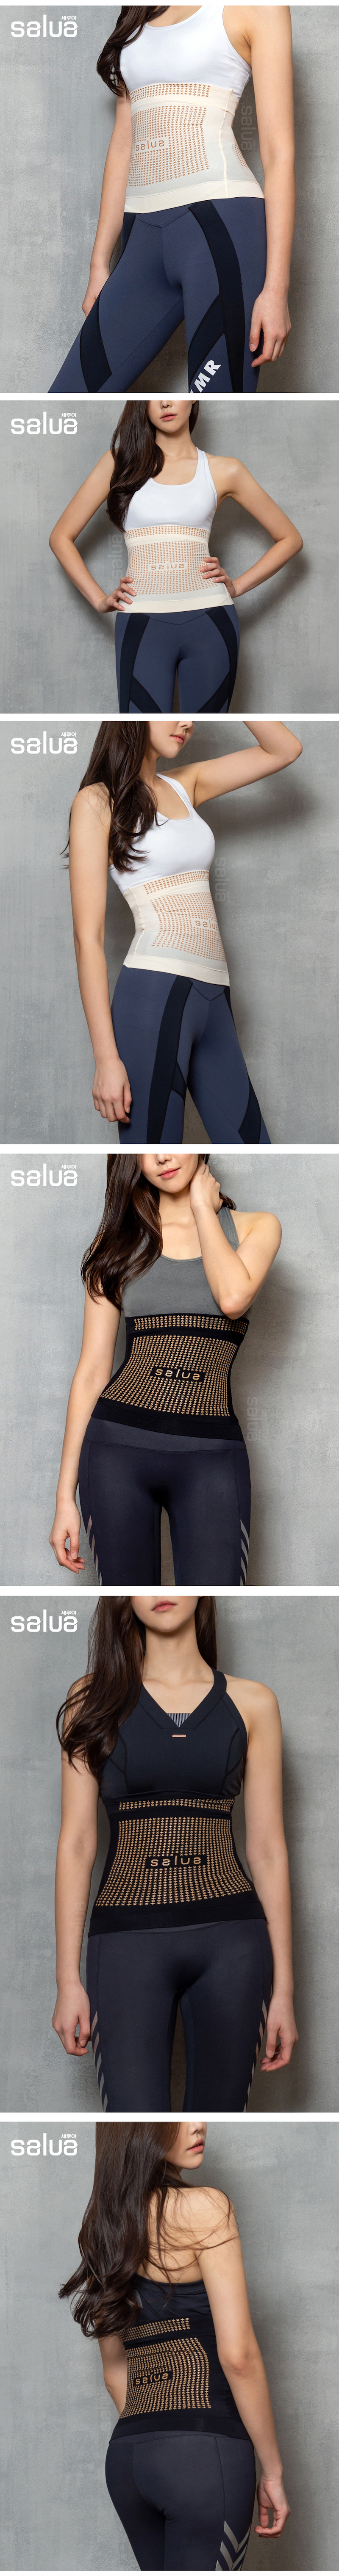 Salua Health Waist Germanium -  Black D08.jpg